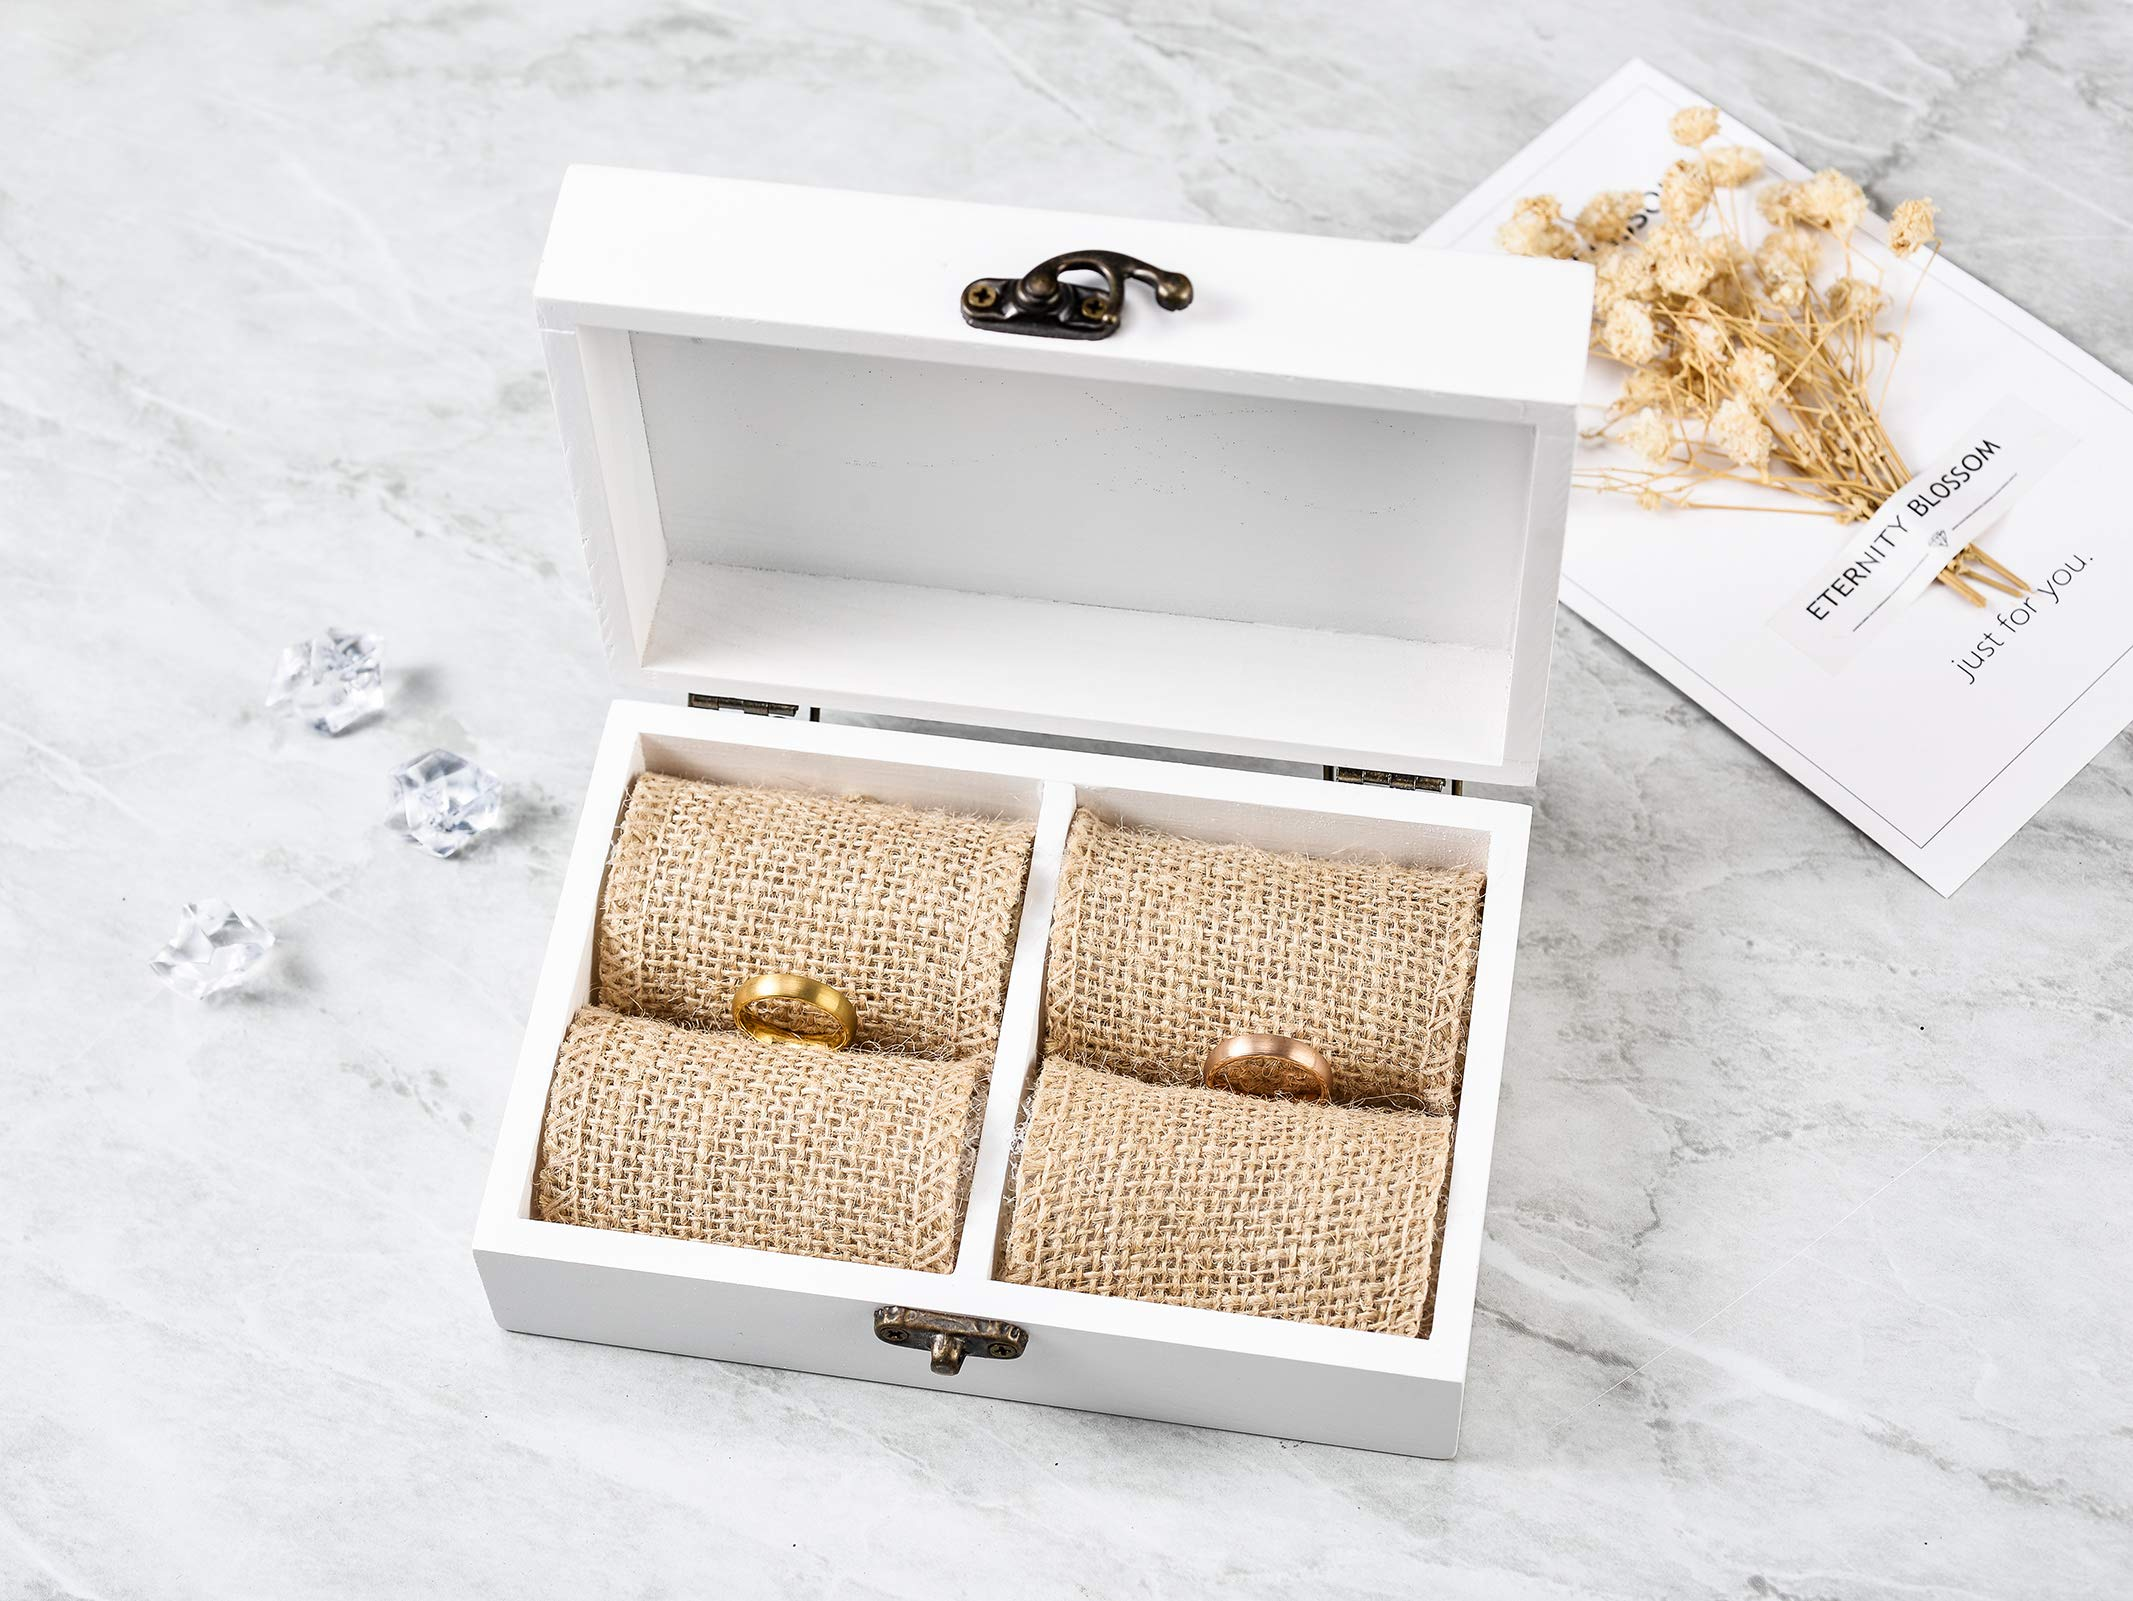 AW Rustic Wood Wedding Ring Bearer Box Jewelry Box for Wedding Ceremony by AWEI (Image #7)